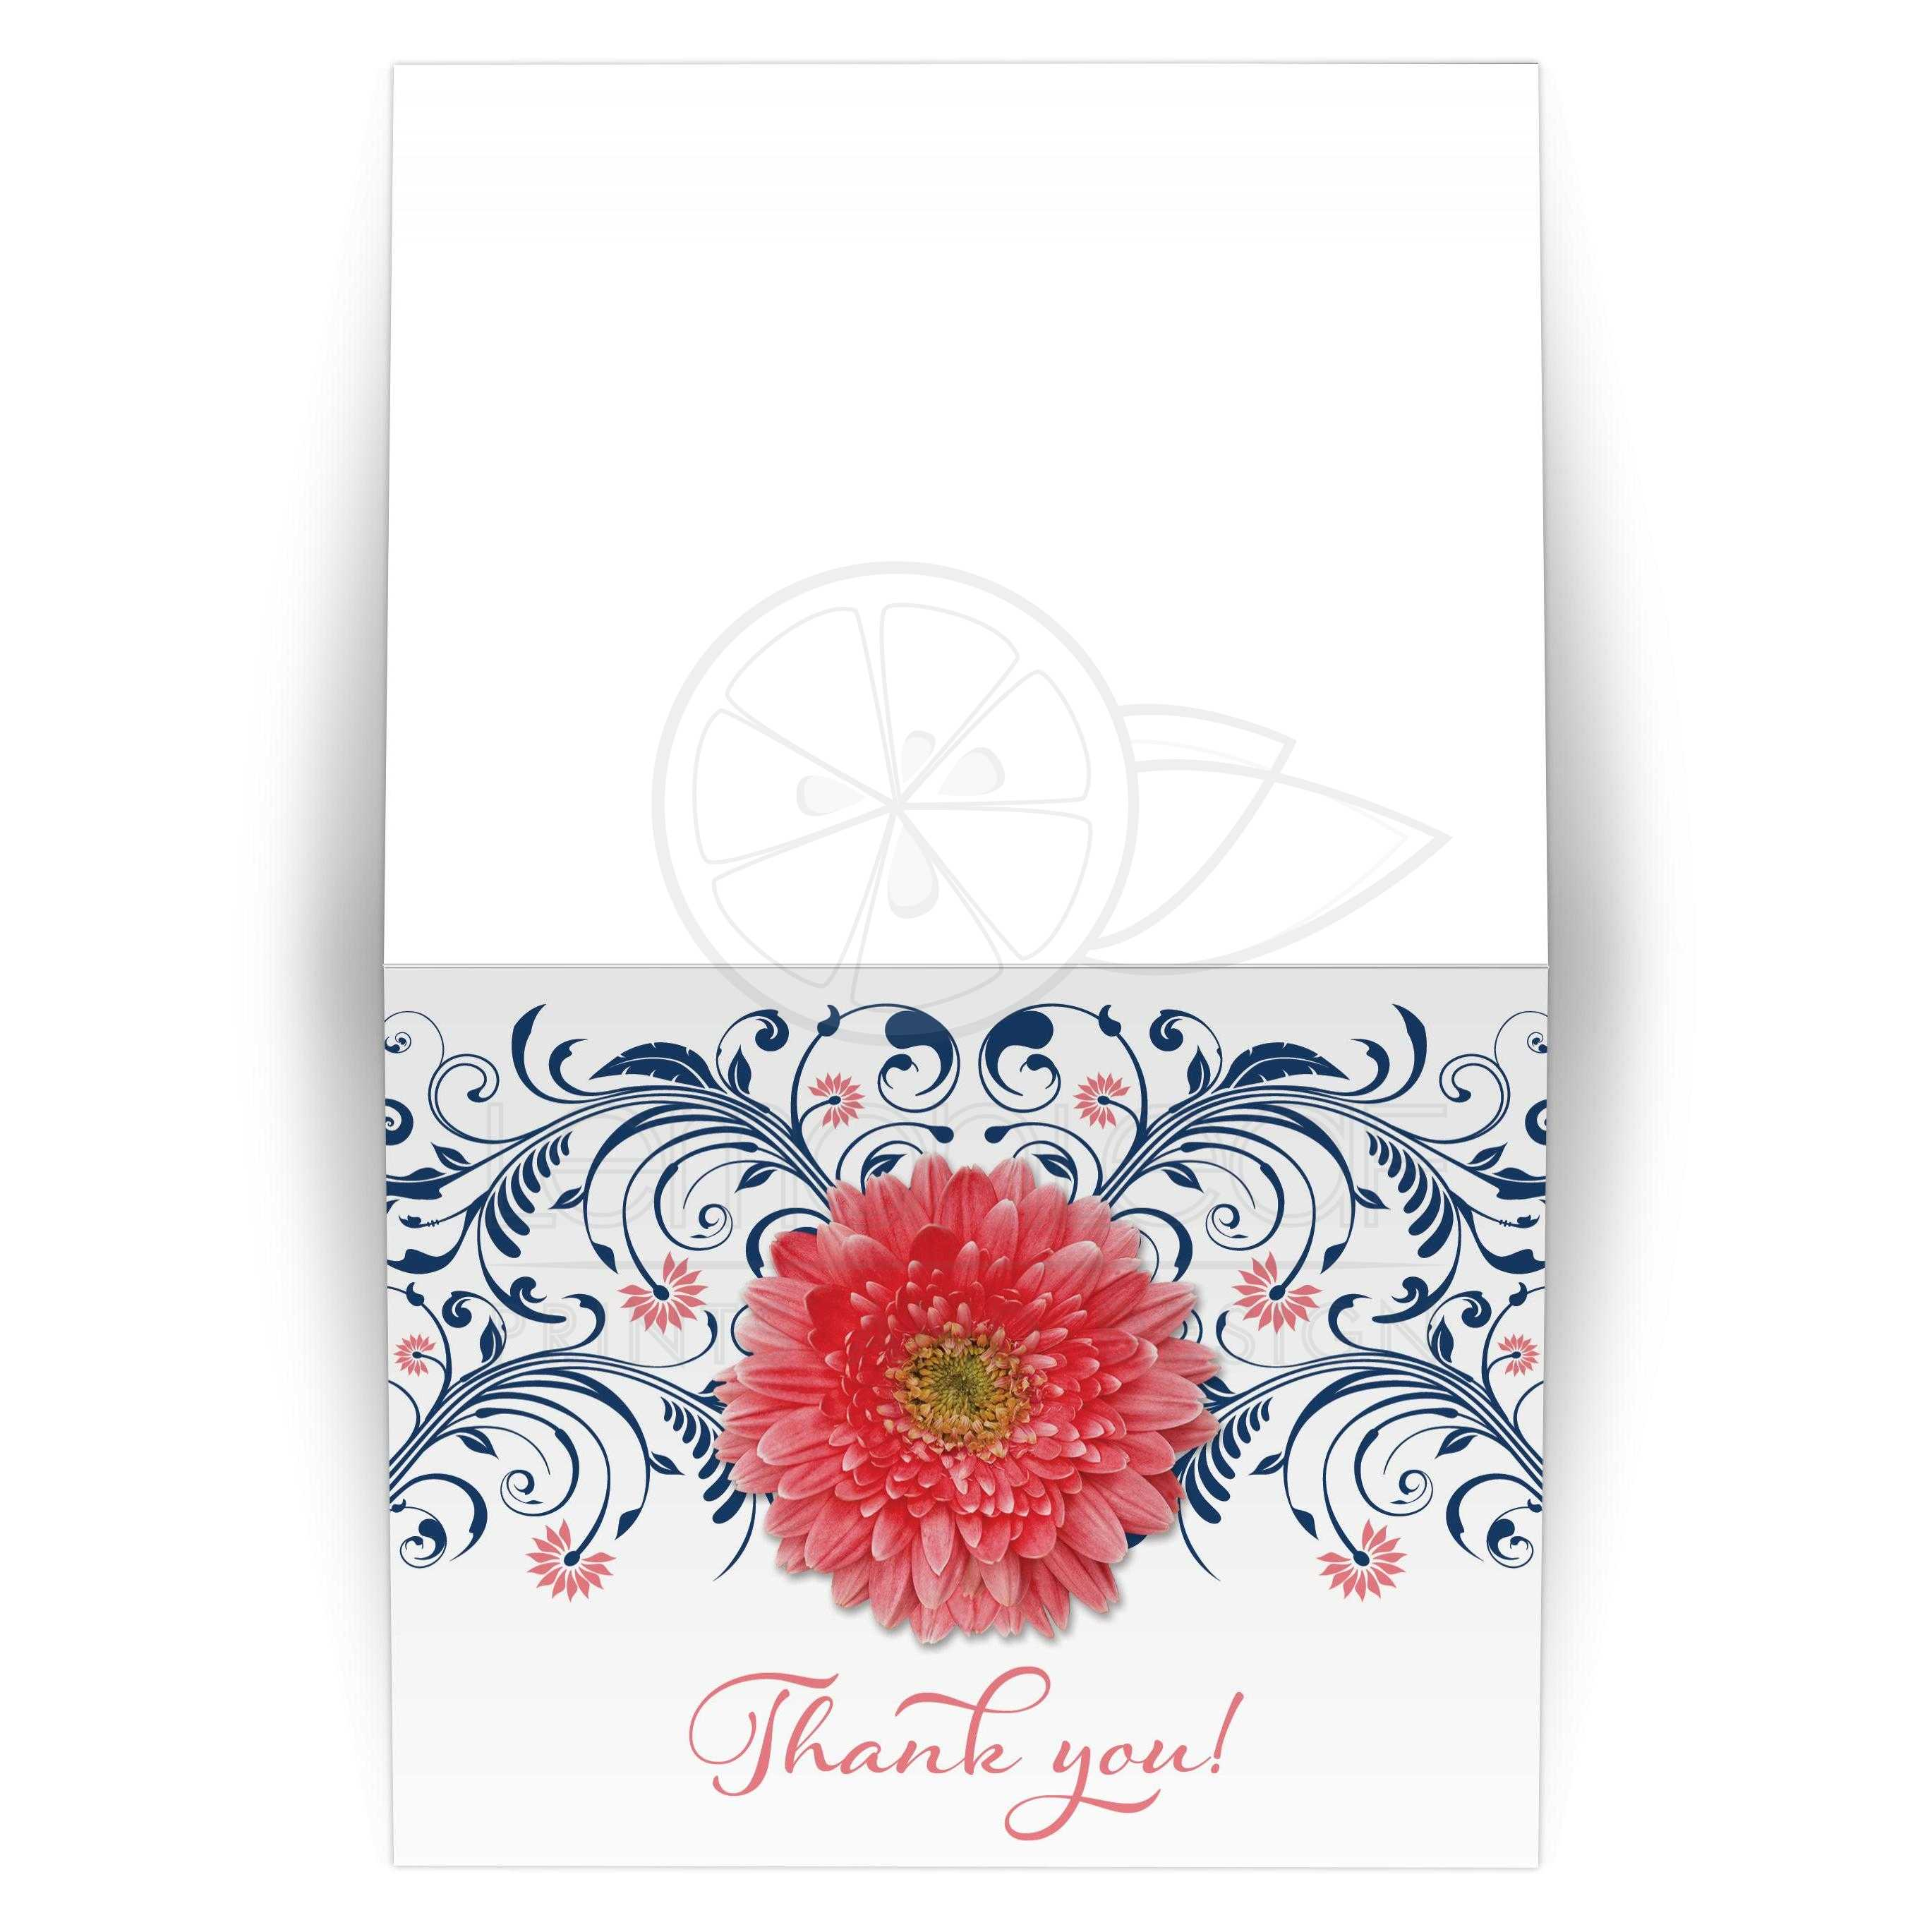 thank you card coral gerbera daisy bridal shower invitation coral gerber daisy bridal shower invitation coral and